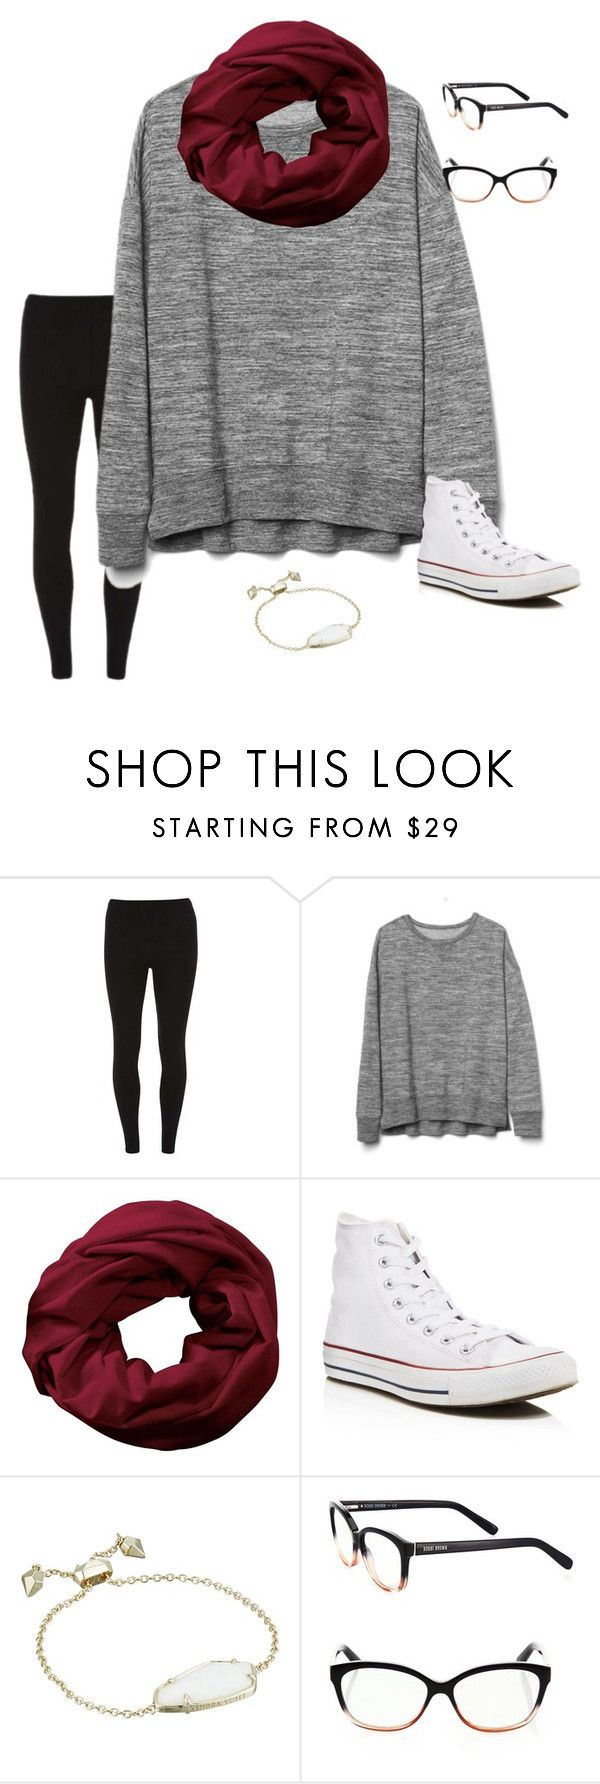 """What do y'all think of this one?"" by averycm-i ❤ liked on Polyvore featuring Dorothy Perkins, Gap, TravelSmith, Converse, Kendra Scott and Bobbi Brown Cosmetics"